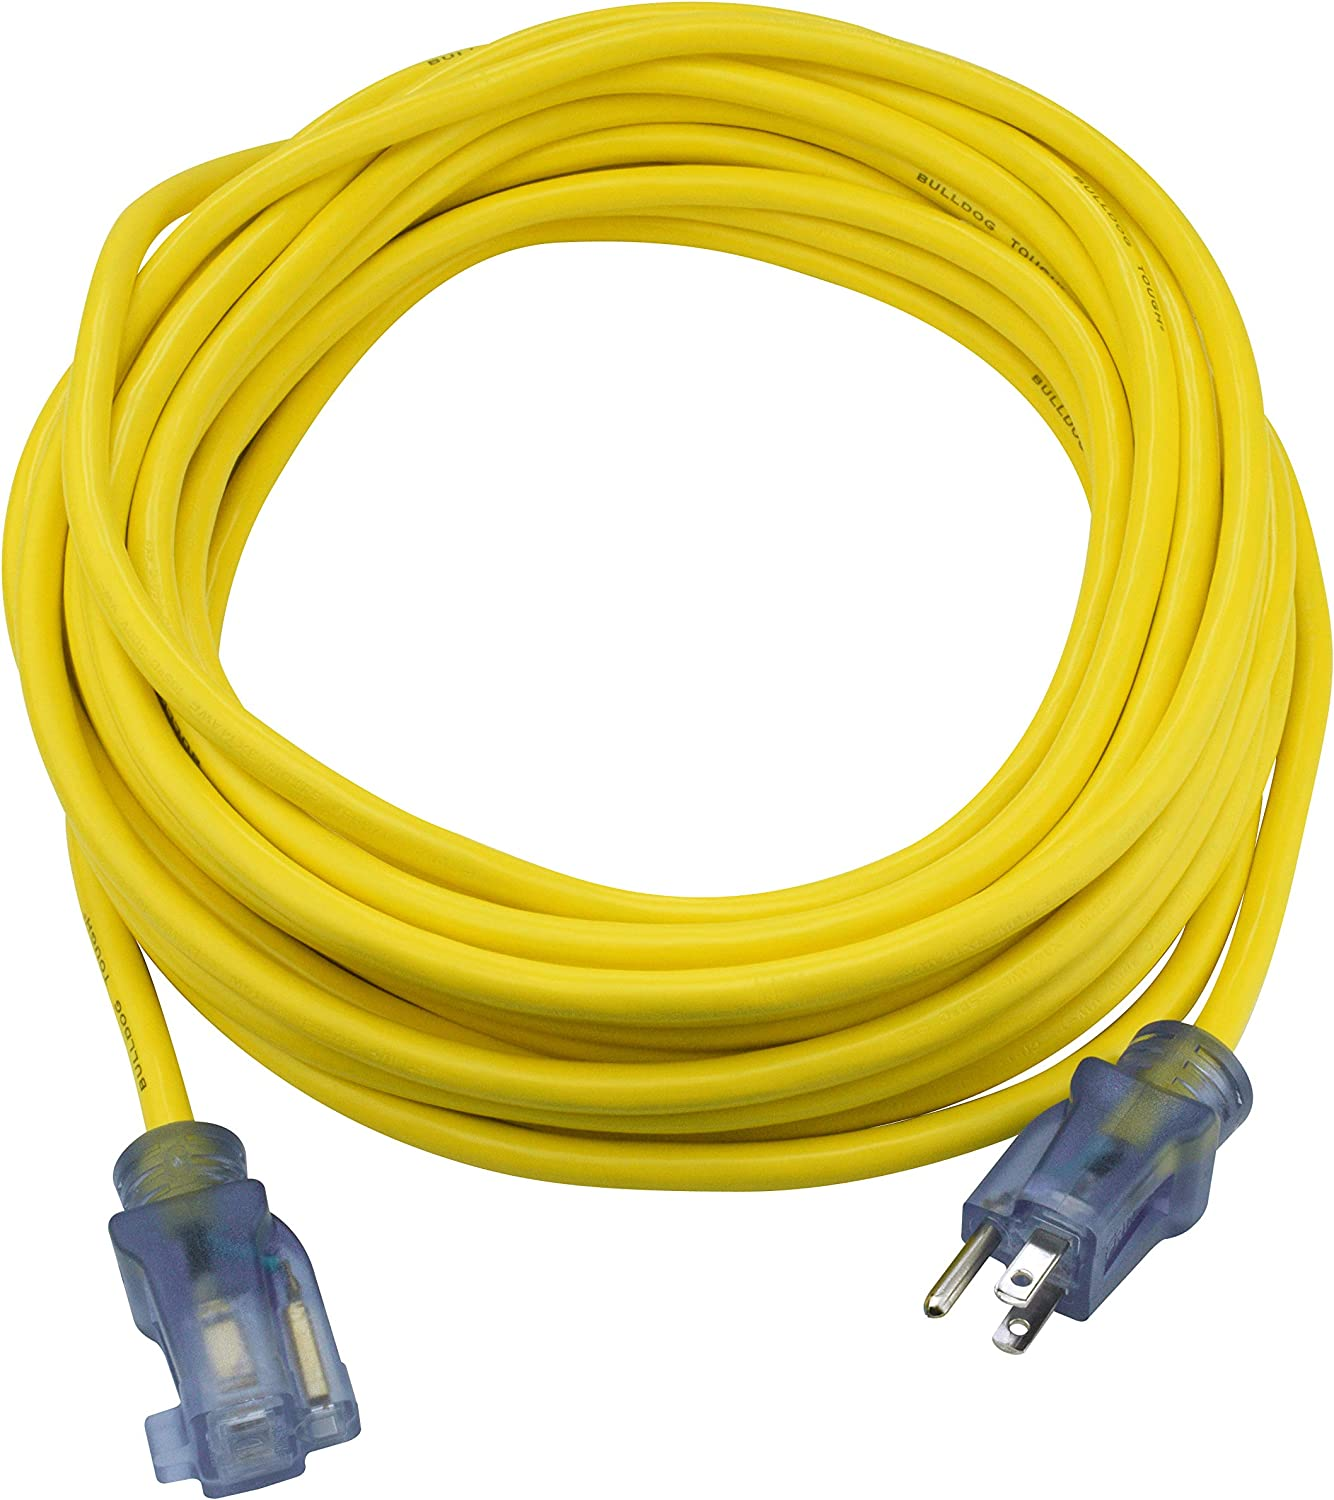 Prime Wire Cable Bombing free shipping LT511730 50-Foot 14 SJTOW Ext Super sale 3 Bulldog Tough